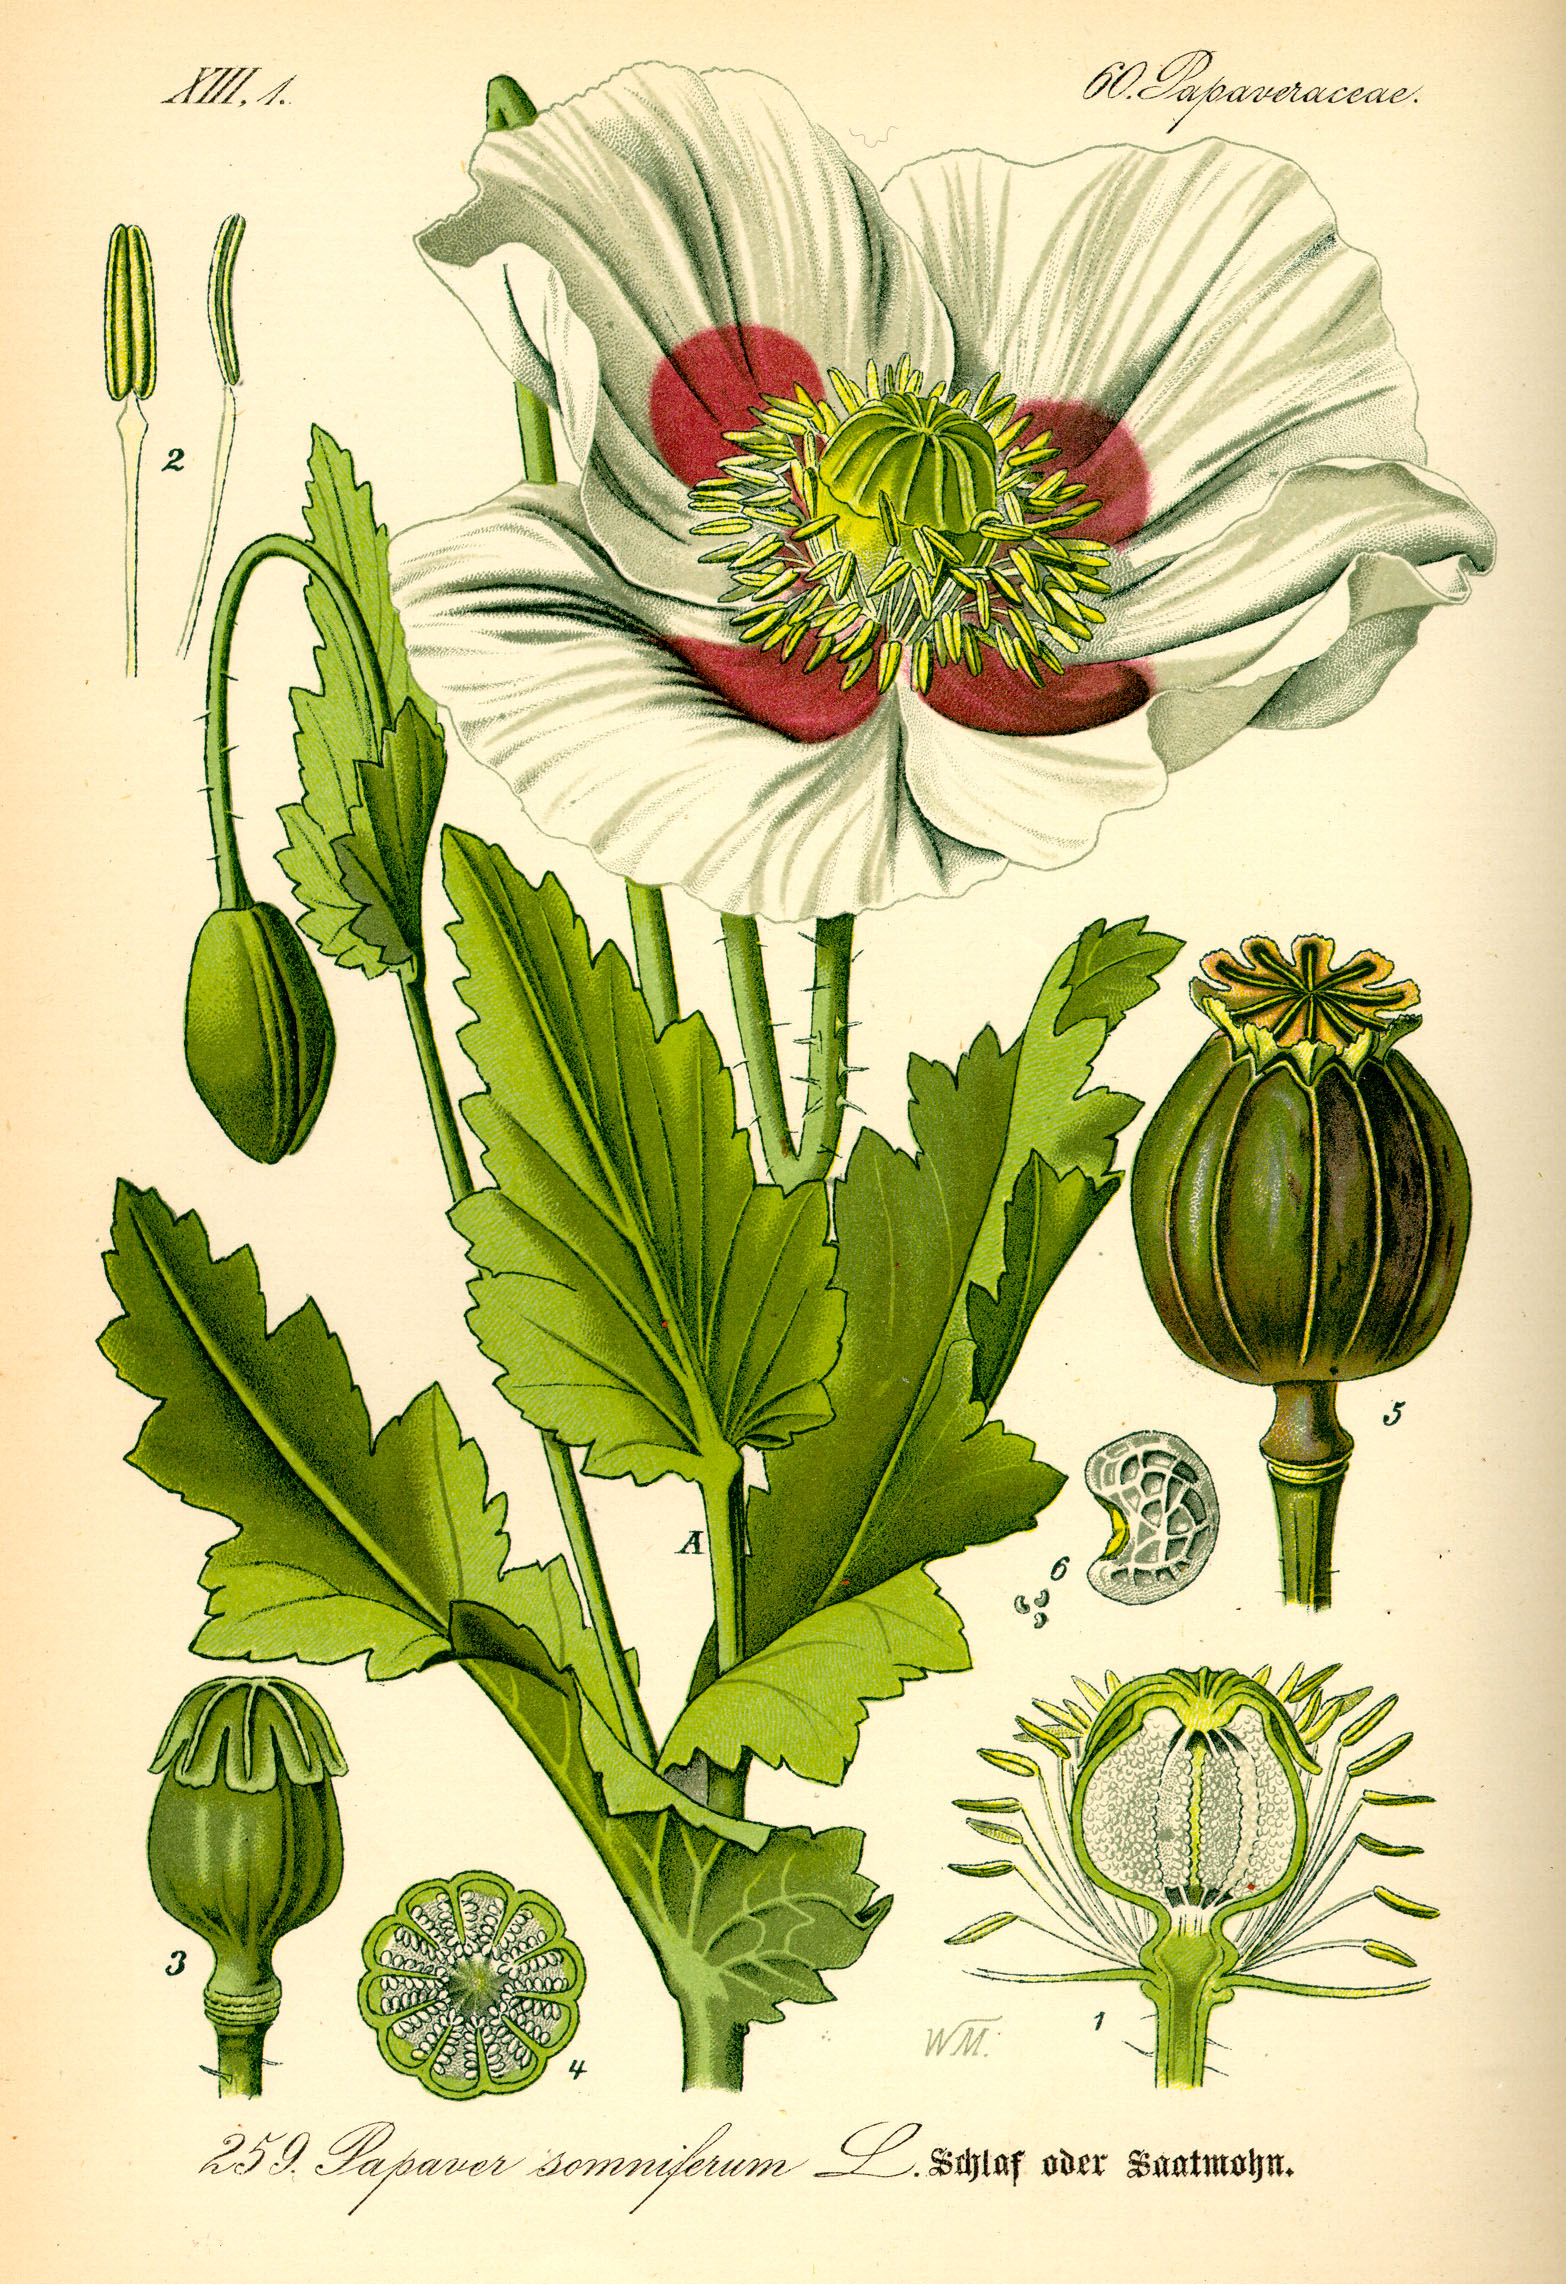 http://upload.wikimedia.org/wikipedia/commons/1/18/Illustration_Papaver_somniferum0.jpg